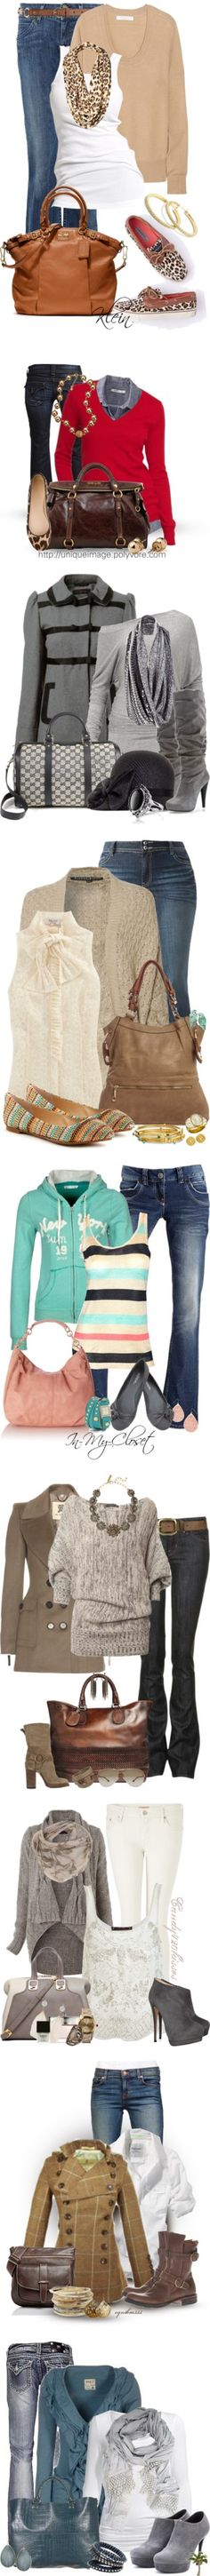 casual comfortable outfits, woman fashion, fall fashions, closets, winter outfits, animal prints, shoe, leopard prints, coats